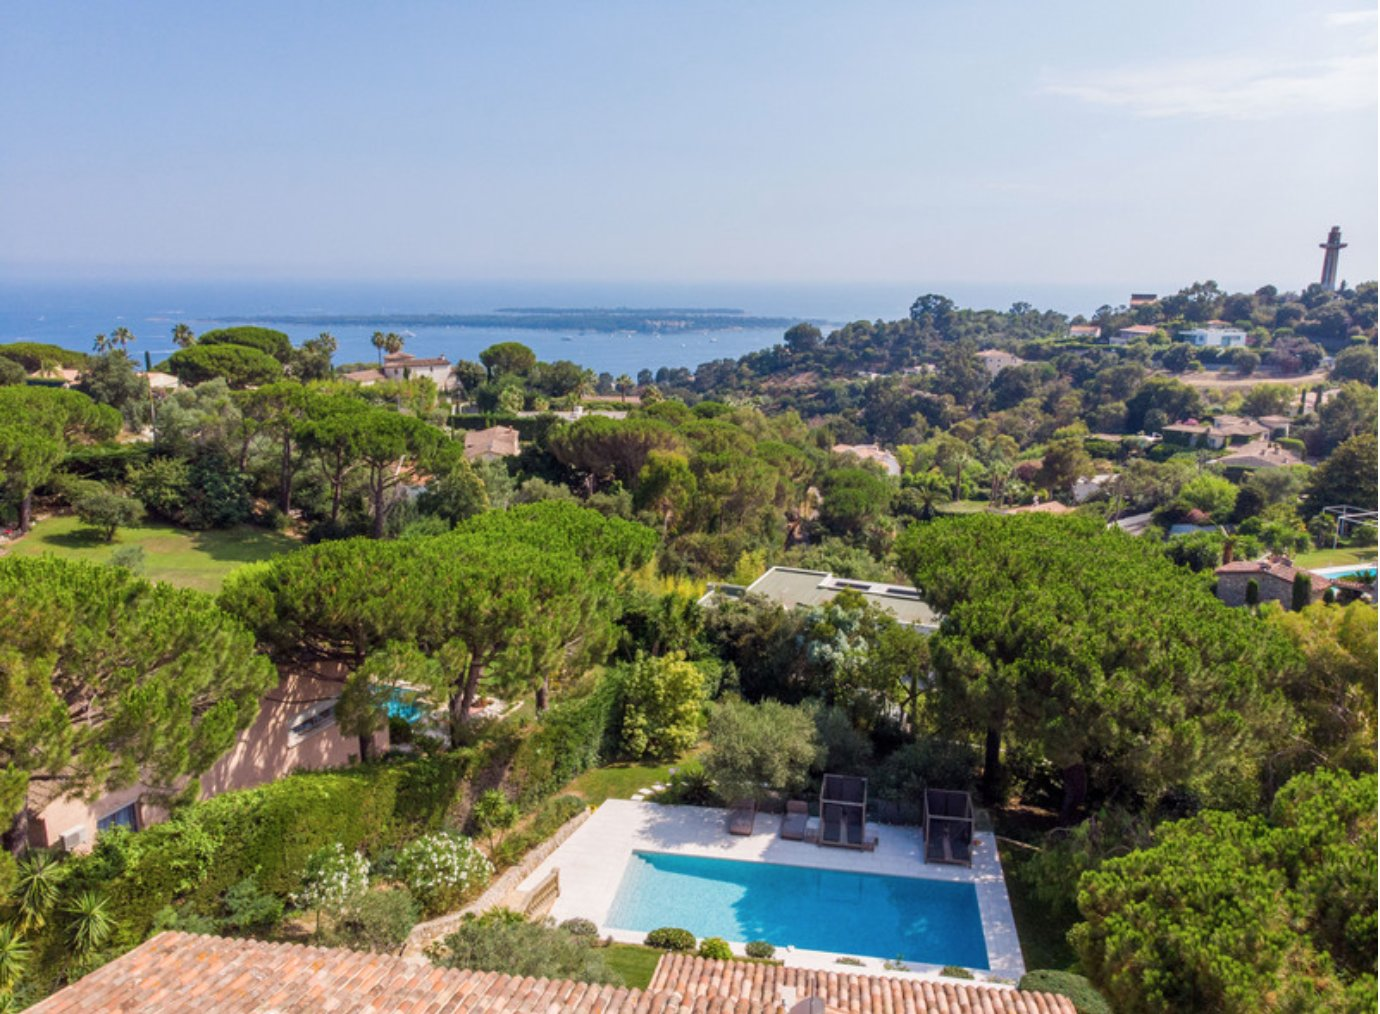 Rental CANNES CALIFORNIE - Beautiful property with seaview 5 bedroom